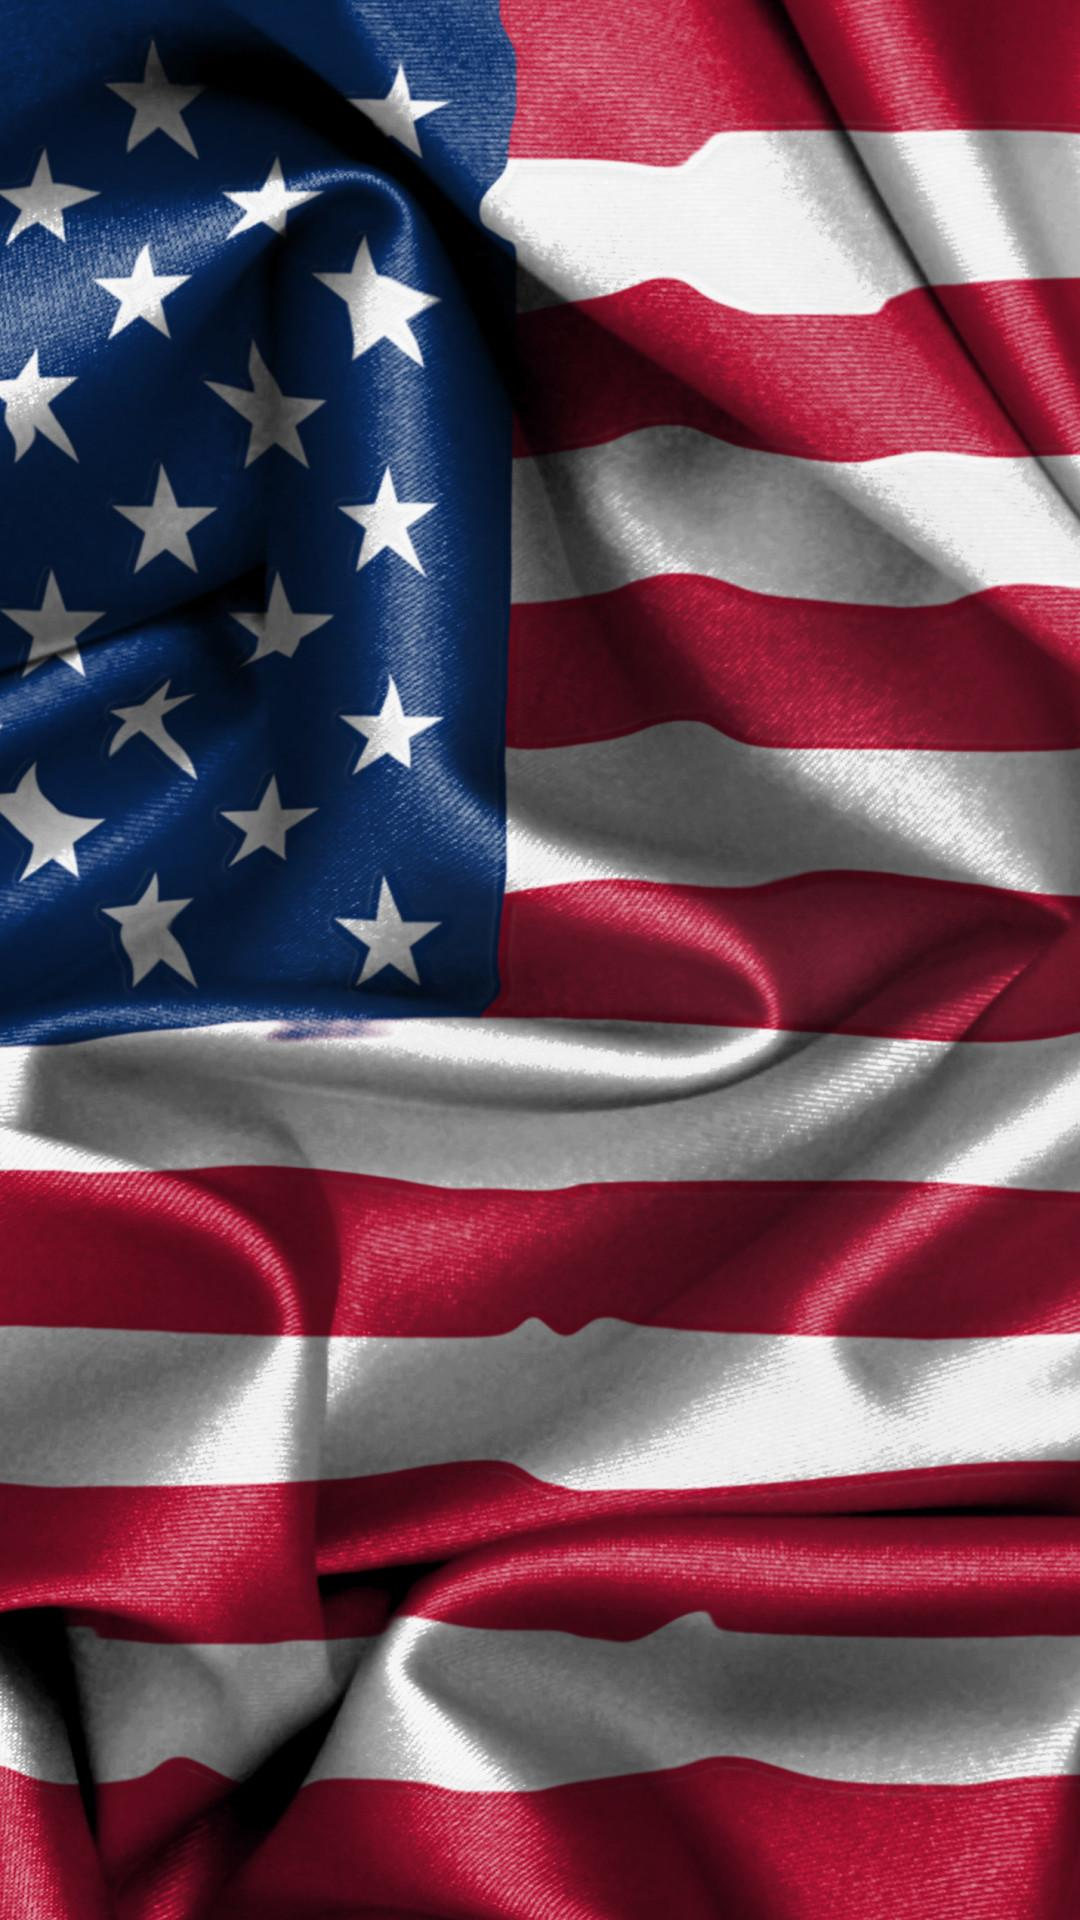 American Flag Iphone Background : american, iphone, background, United, States, Phone, Wallpapers, Wallpaper